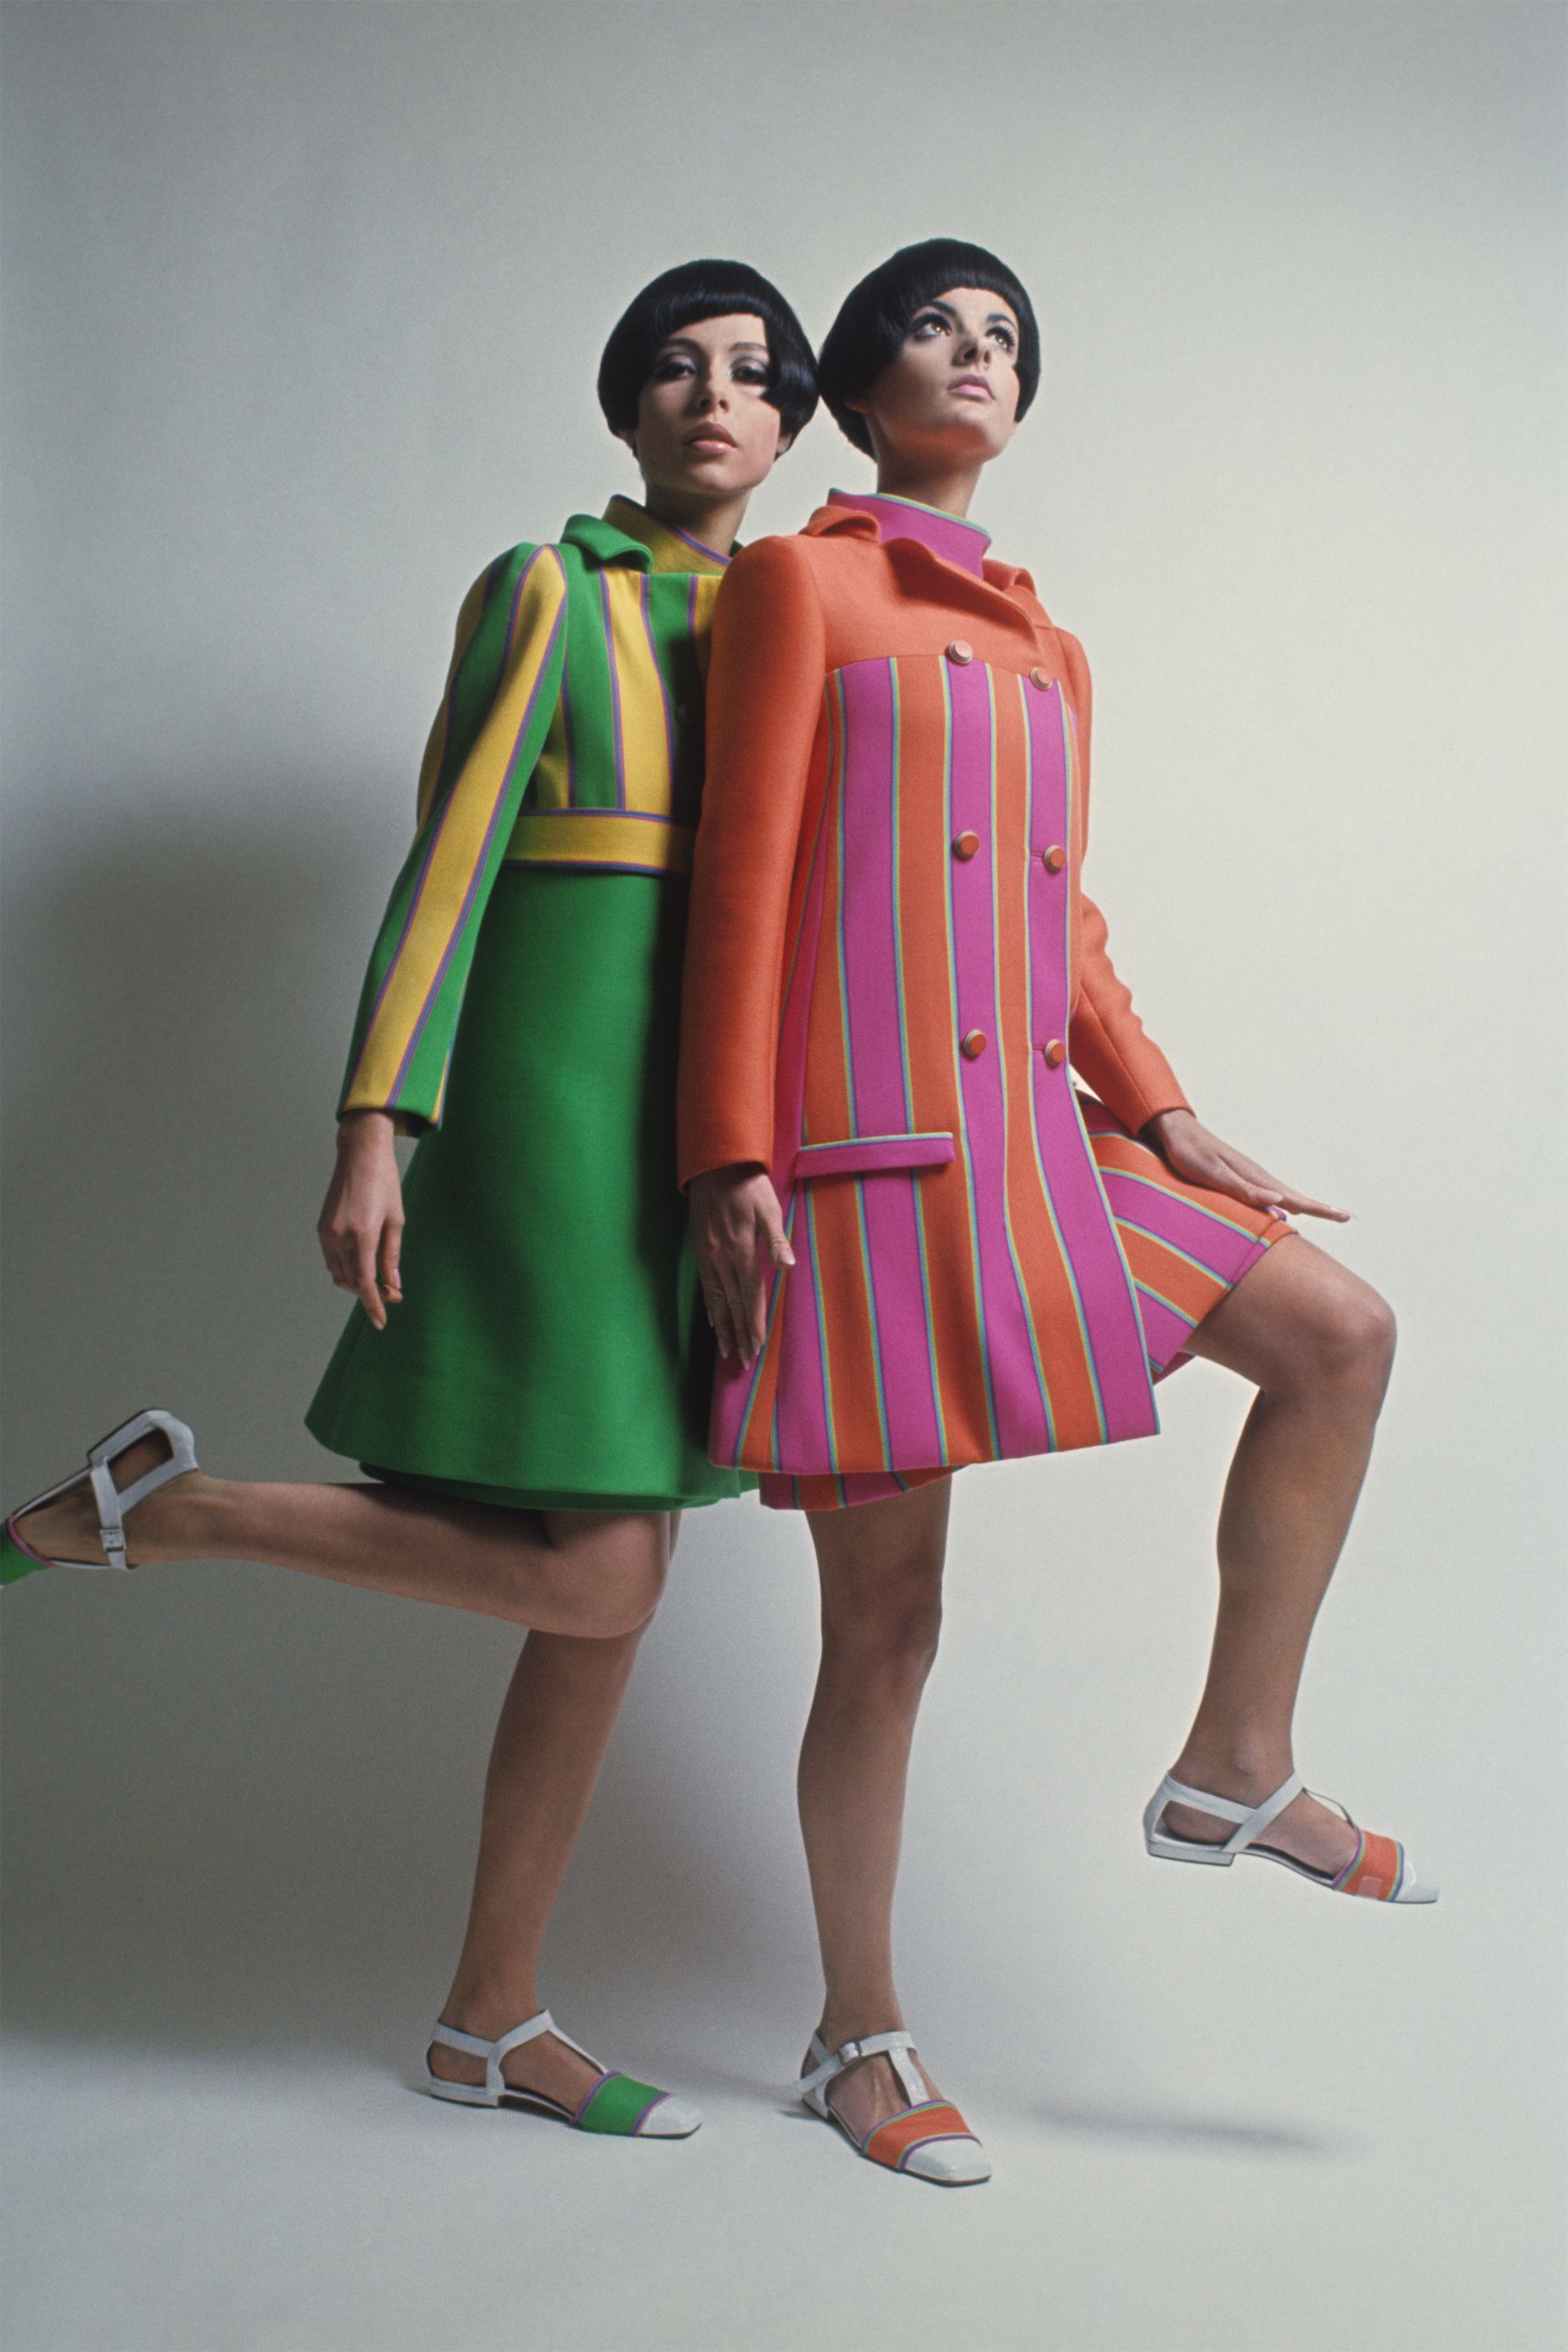 60ies Wedding Dress.Best 1960s Fashion Trends And Outfits 60s Fashion And Style